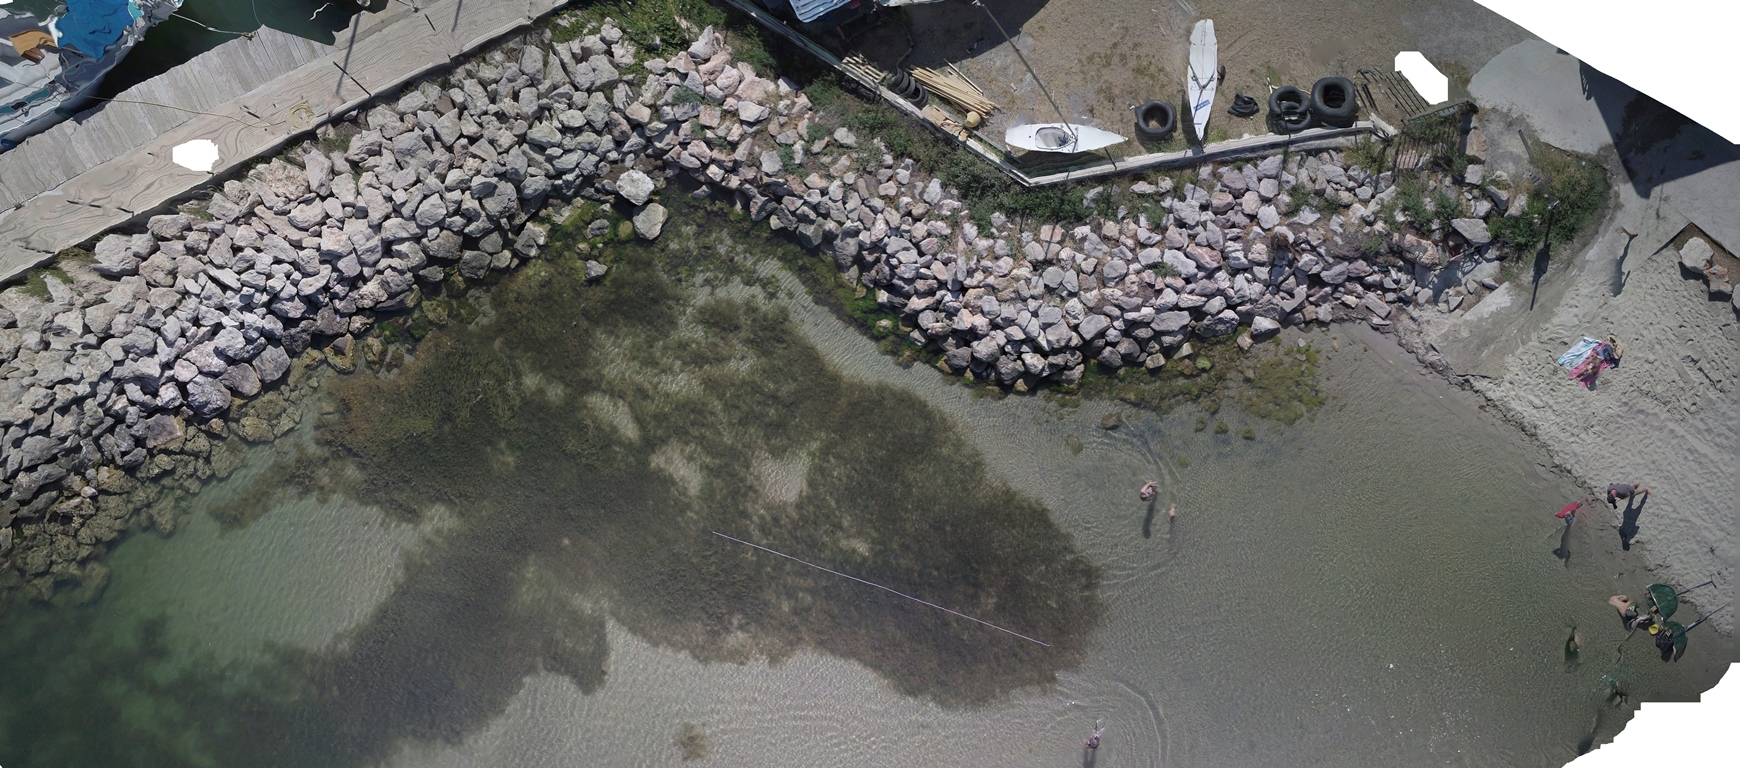 The orthophotoplan created with the photos of the drone is used to measure with great precision this particular seagrass in the Étang de Thau © Octopus Foundation